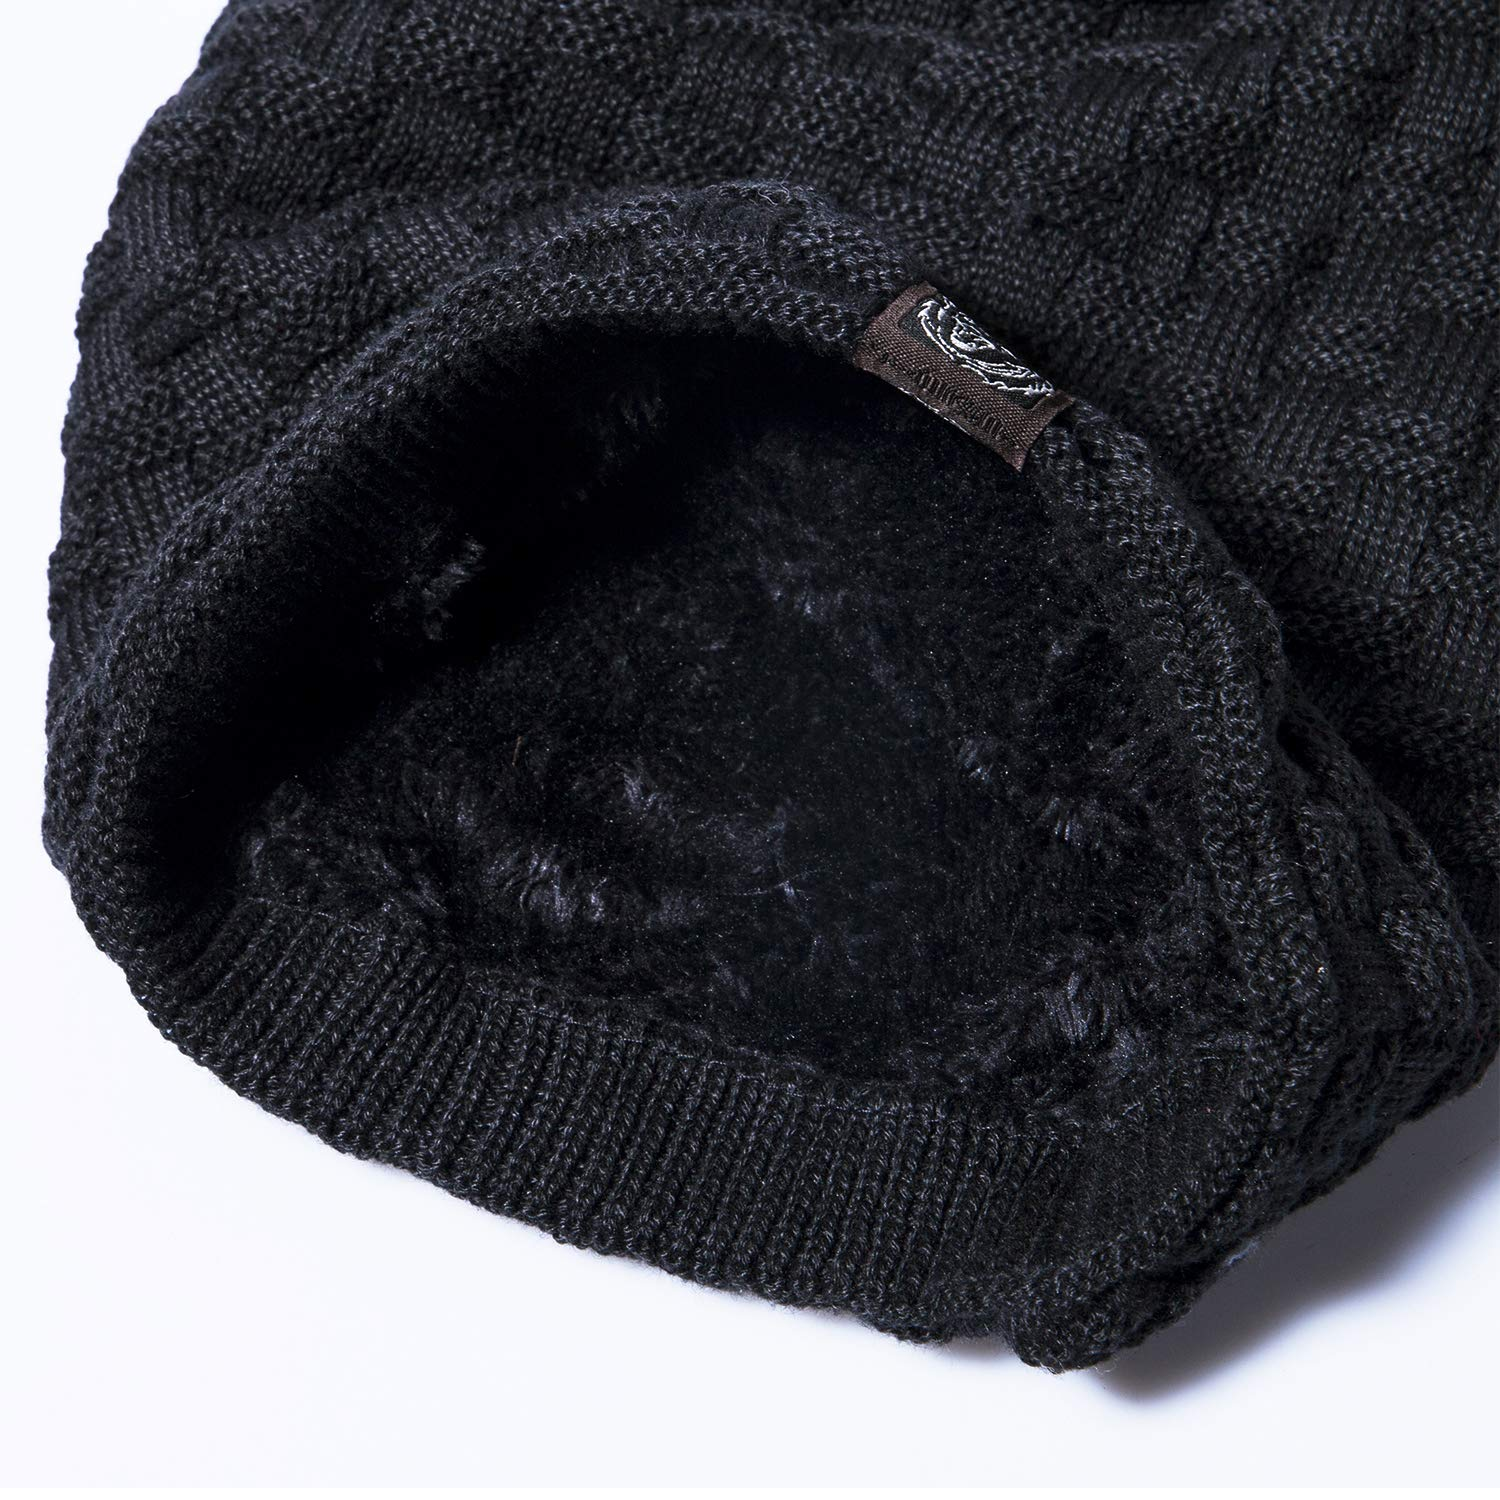 cb1988f0aa6 Mens Beanie Hat - Winter Warm Thermal Knit Caps for Men Women